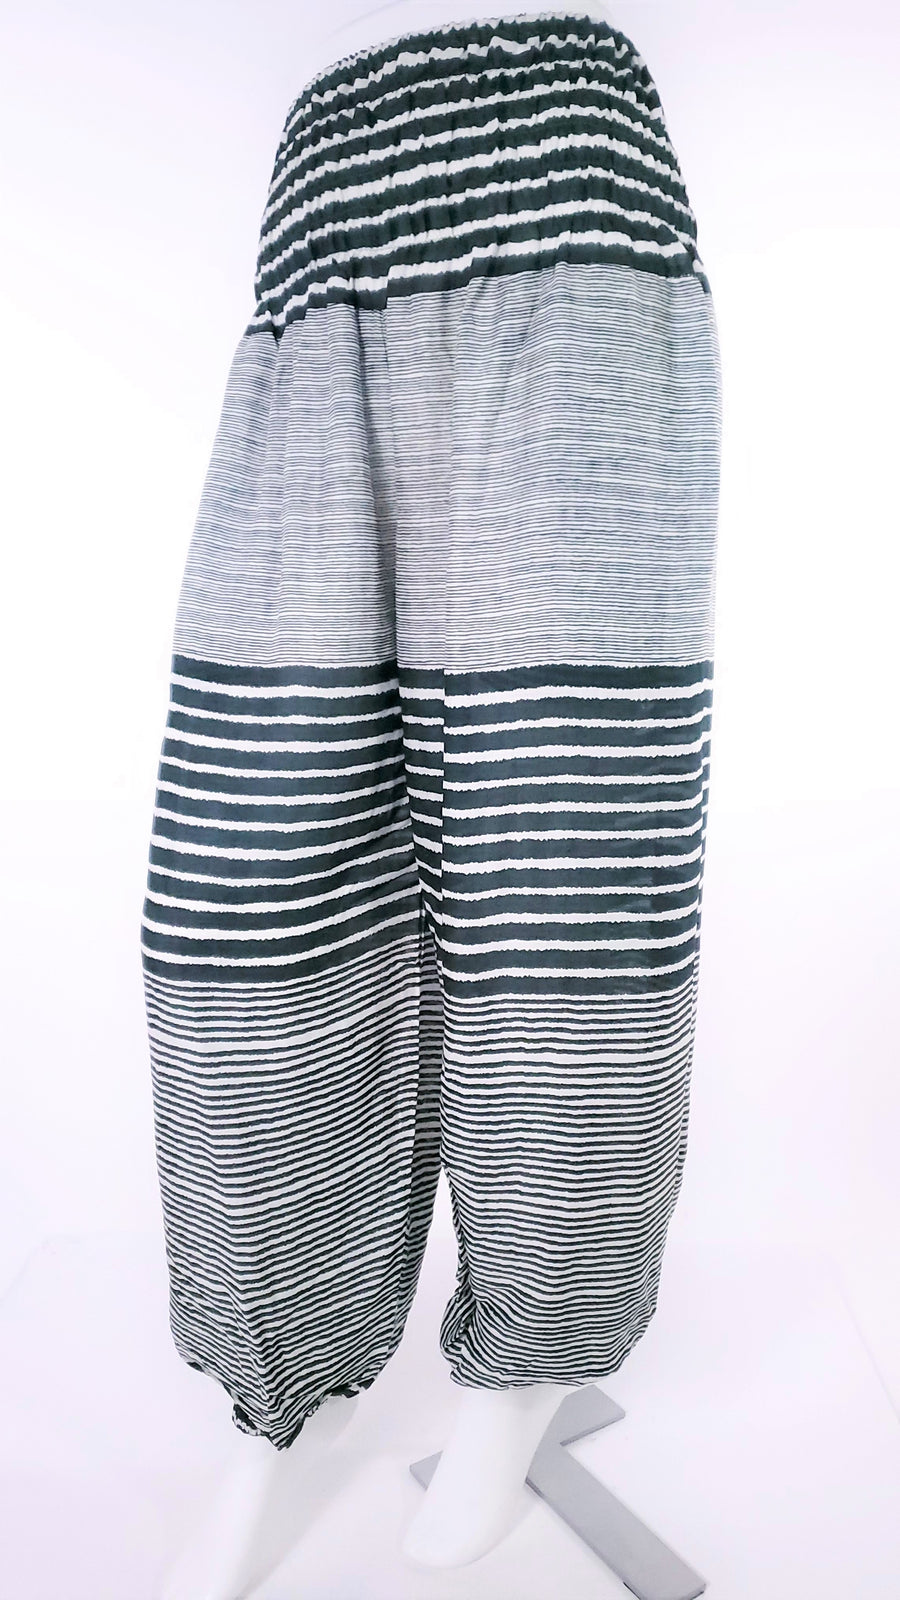 Striped Straight Leg Harem Pants In Green-The High Thai-The High Thai-Yoga Pants-Harem Pants-Hippie Clothing-San Diego